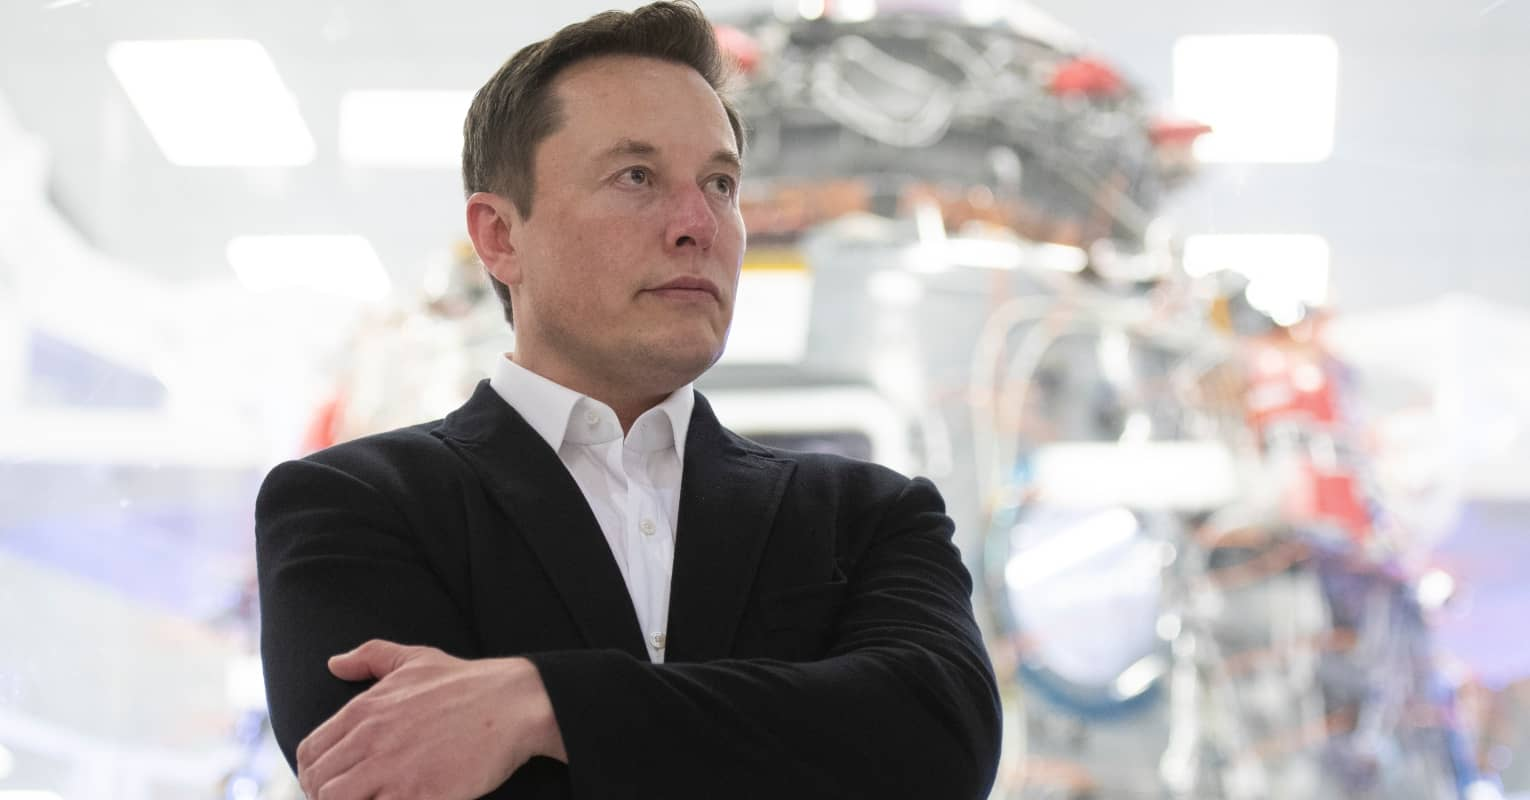 Elon Musk is offering $100m to whoever creates the best carbon capture technology